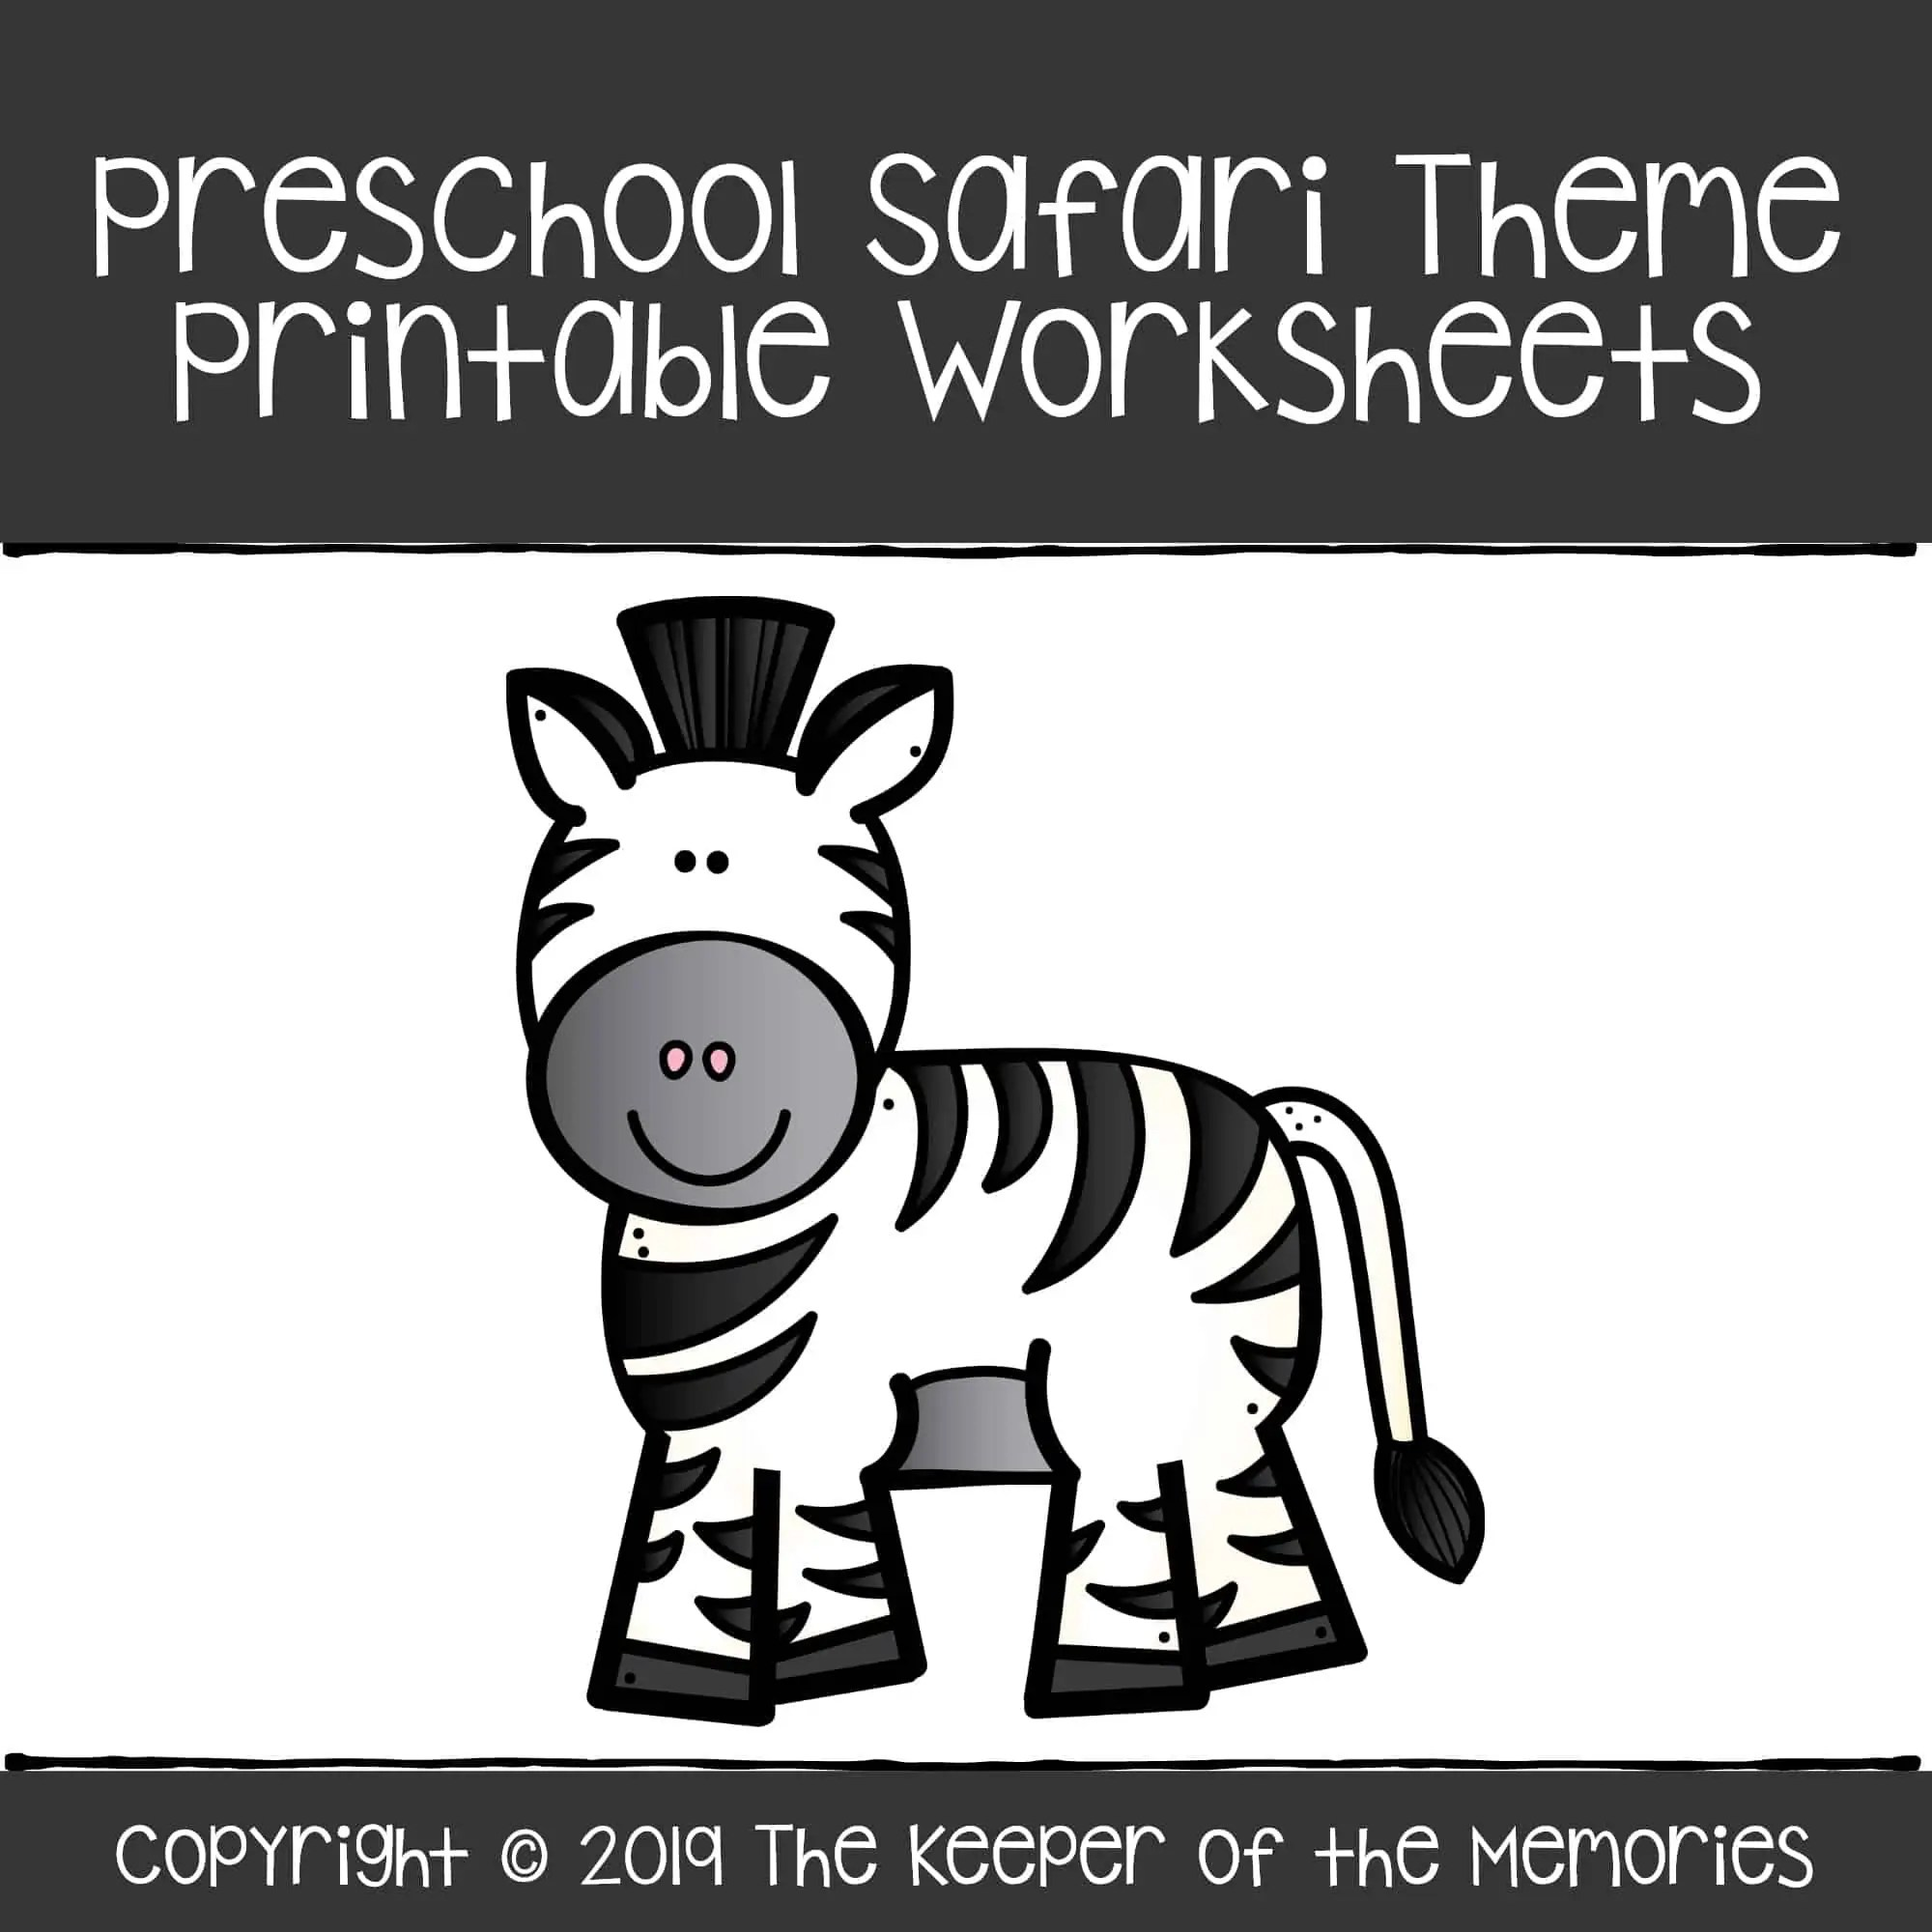 Preschool Safari Theme Printable Worksheets